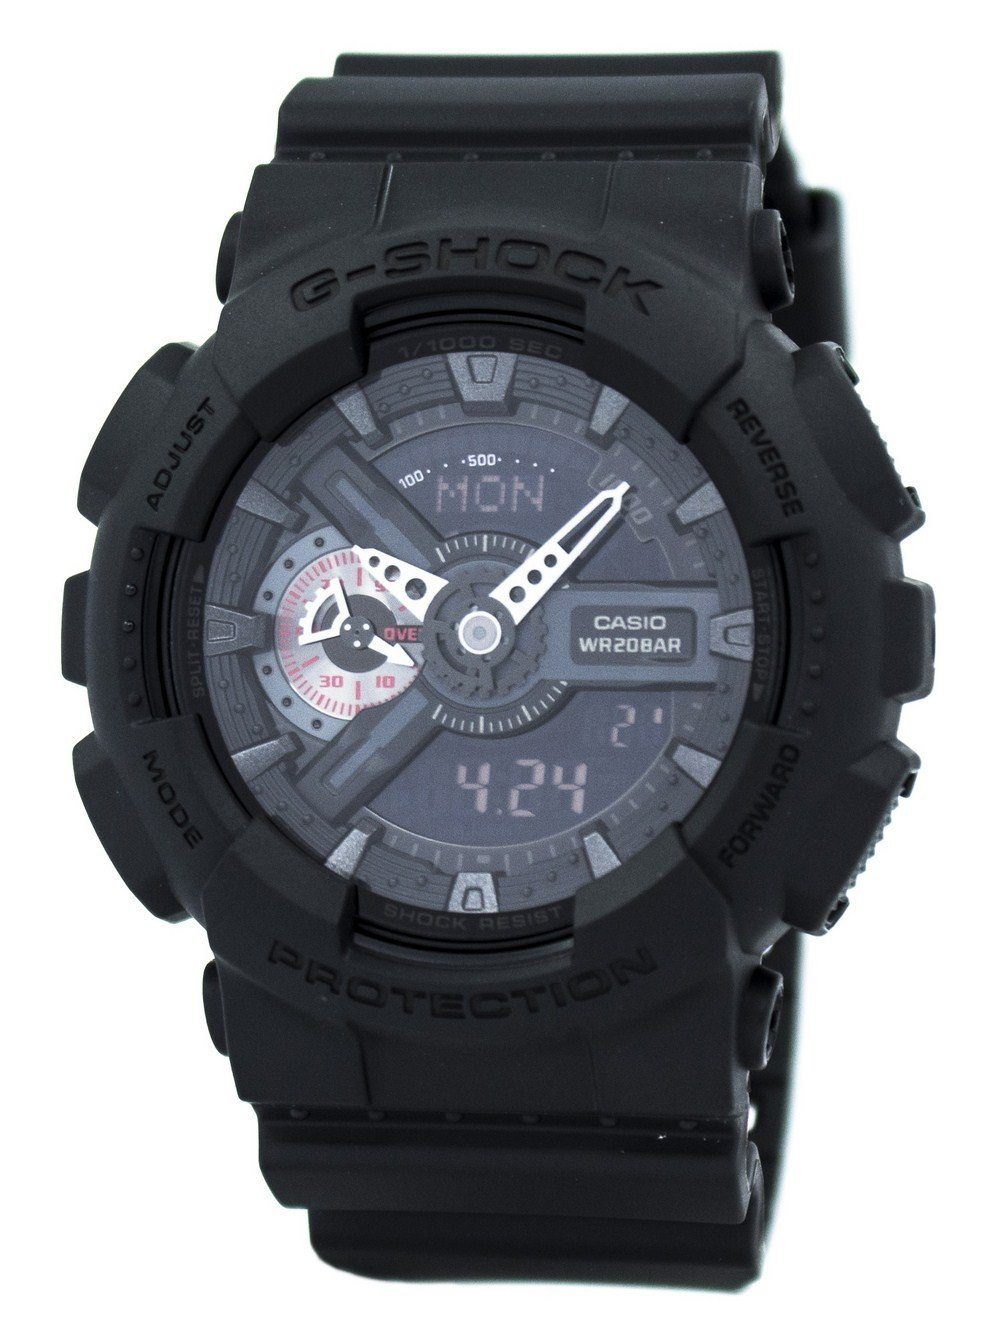 Casio Men's G-Shock Chronograph Watch GA-110MB-1A - JB Watches